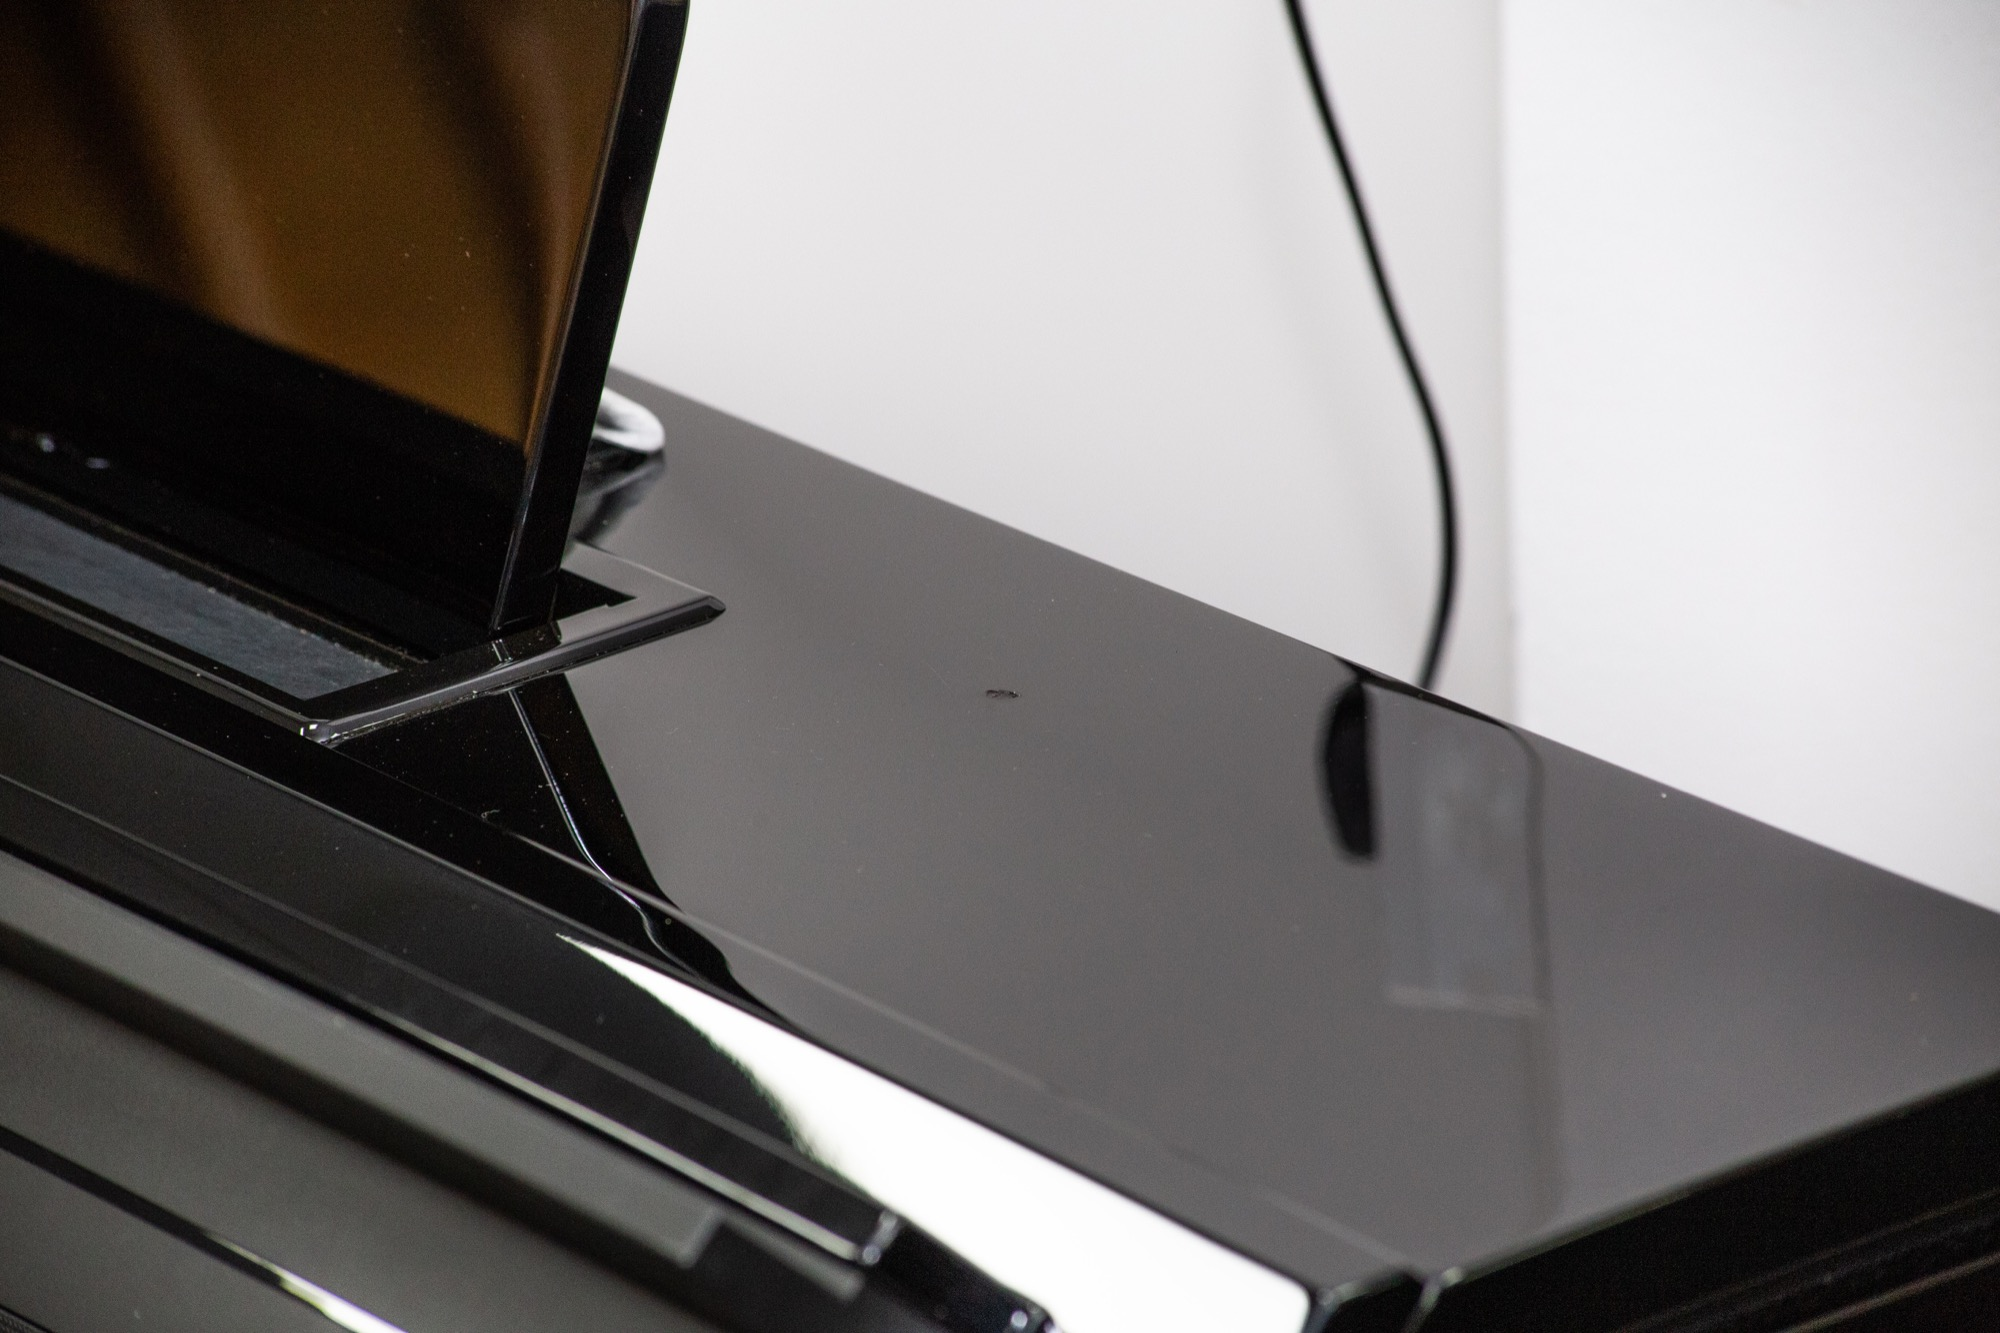 Yamaha Ex Demo Cvp 705 Clavinova Digital Piano In Polished